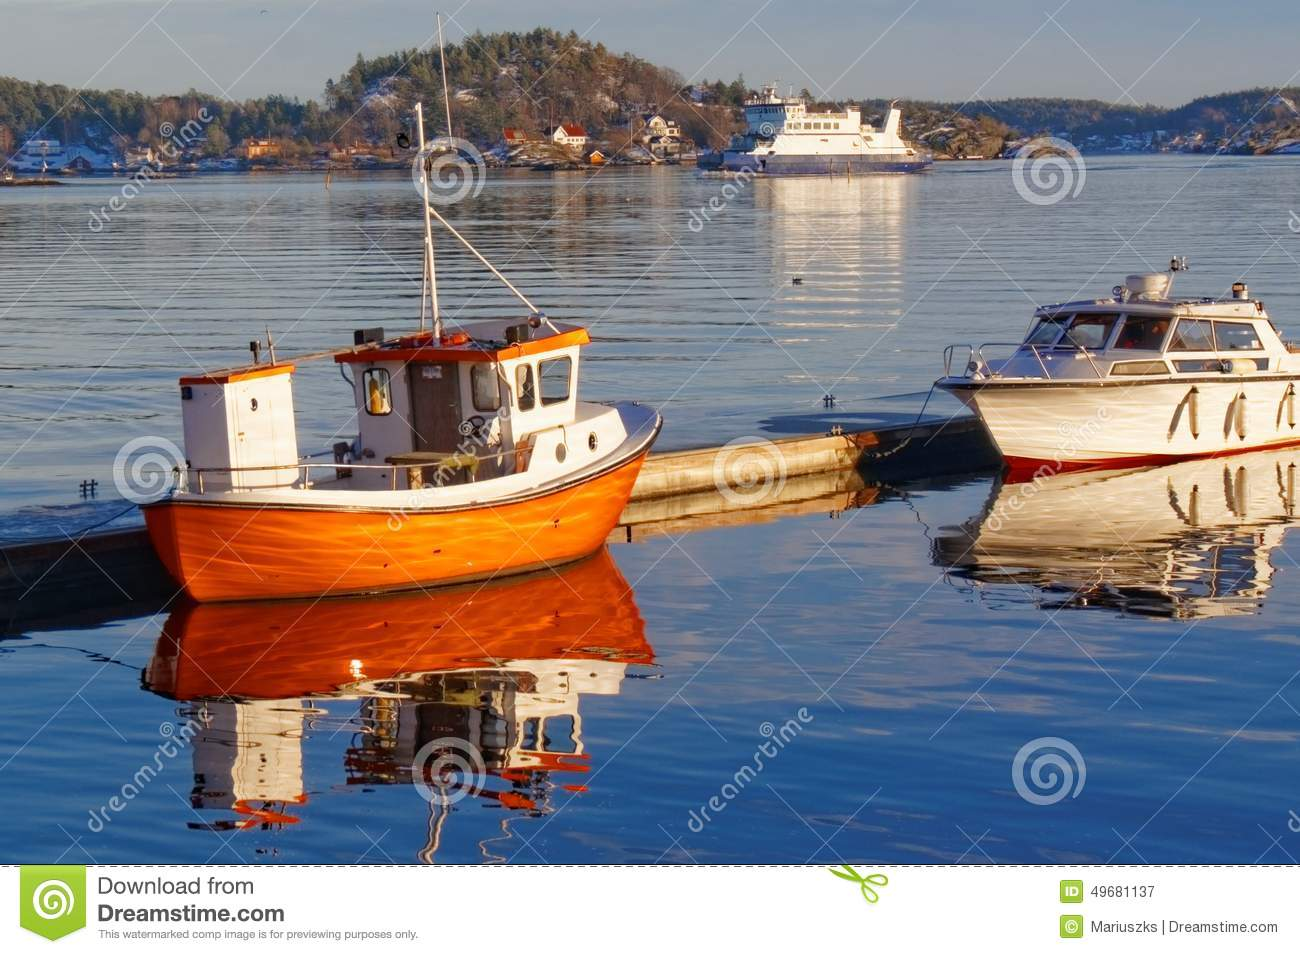 Small Orange Fishing Boat With Reflection In The Water Stock Photo - Image: 49681137